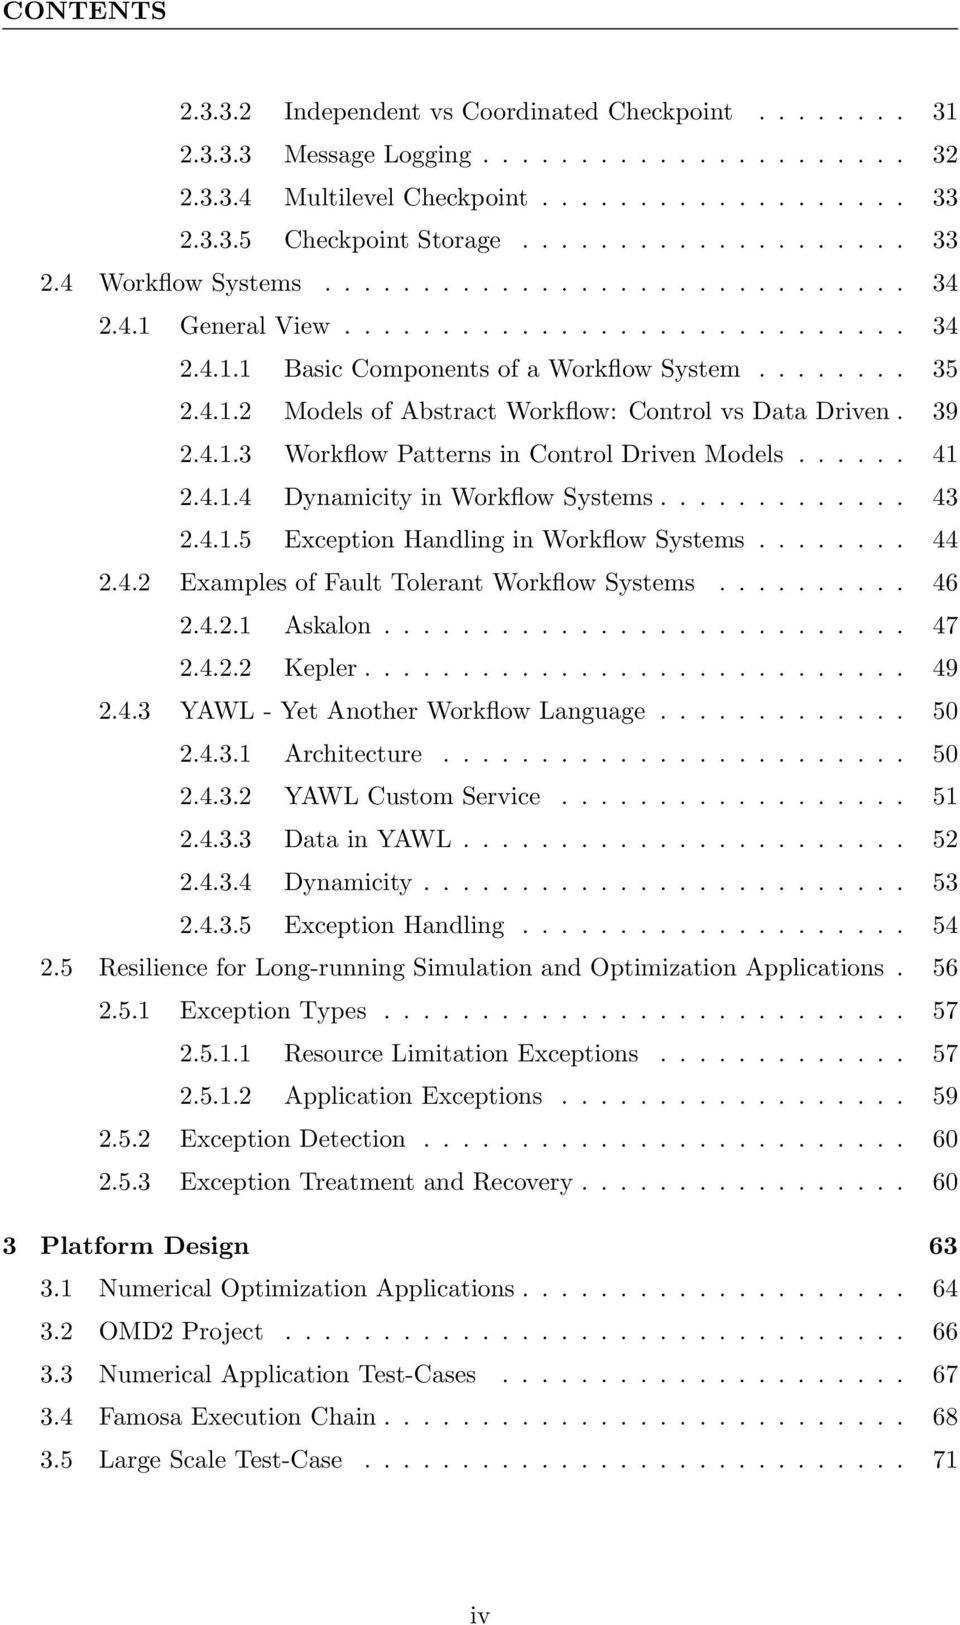 39 2.4.1.3 Workflow Patterns in Control Driven Models...... 41 2.4.1.4 Dynamicity in Workflow Systems............. 43 2.4.1.5 Exception Handling in Workflow Systems........ 44 2.4.2 Examples of Fault Tolerant Workflow Systems.